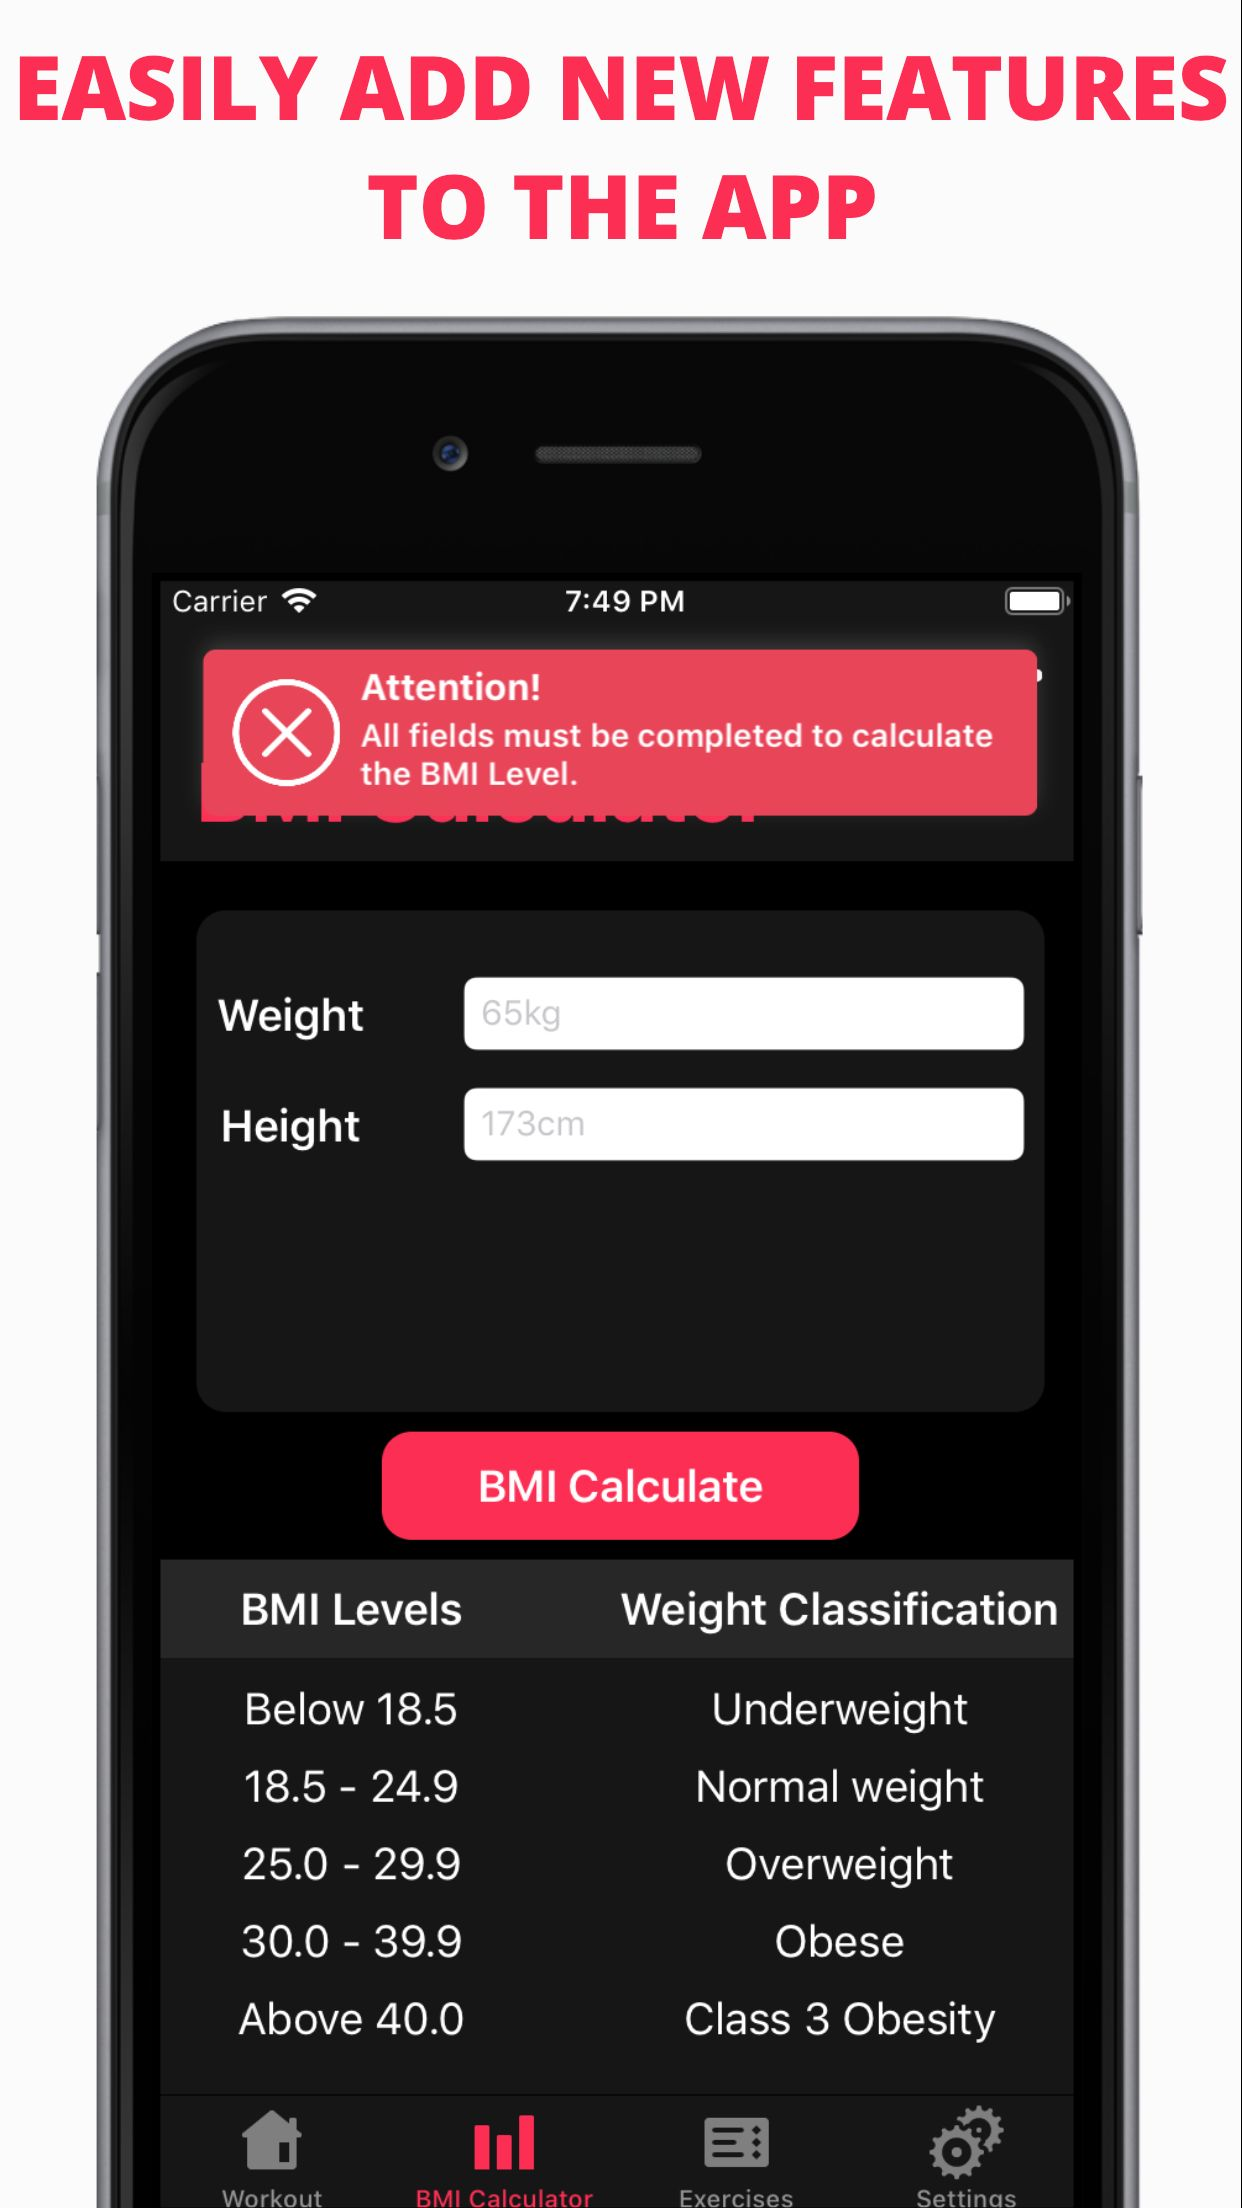 Easy Workout - iOS Fitness Application  Screenshot 7